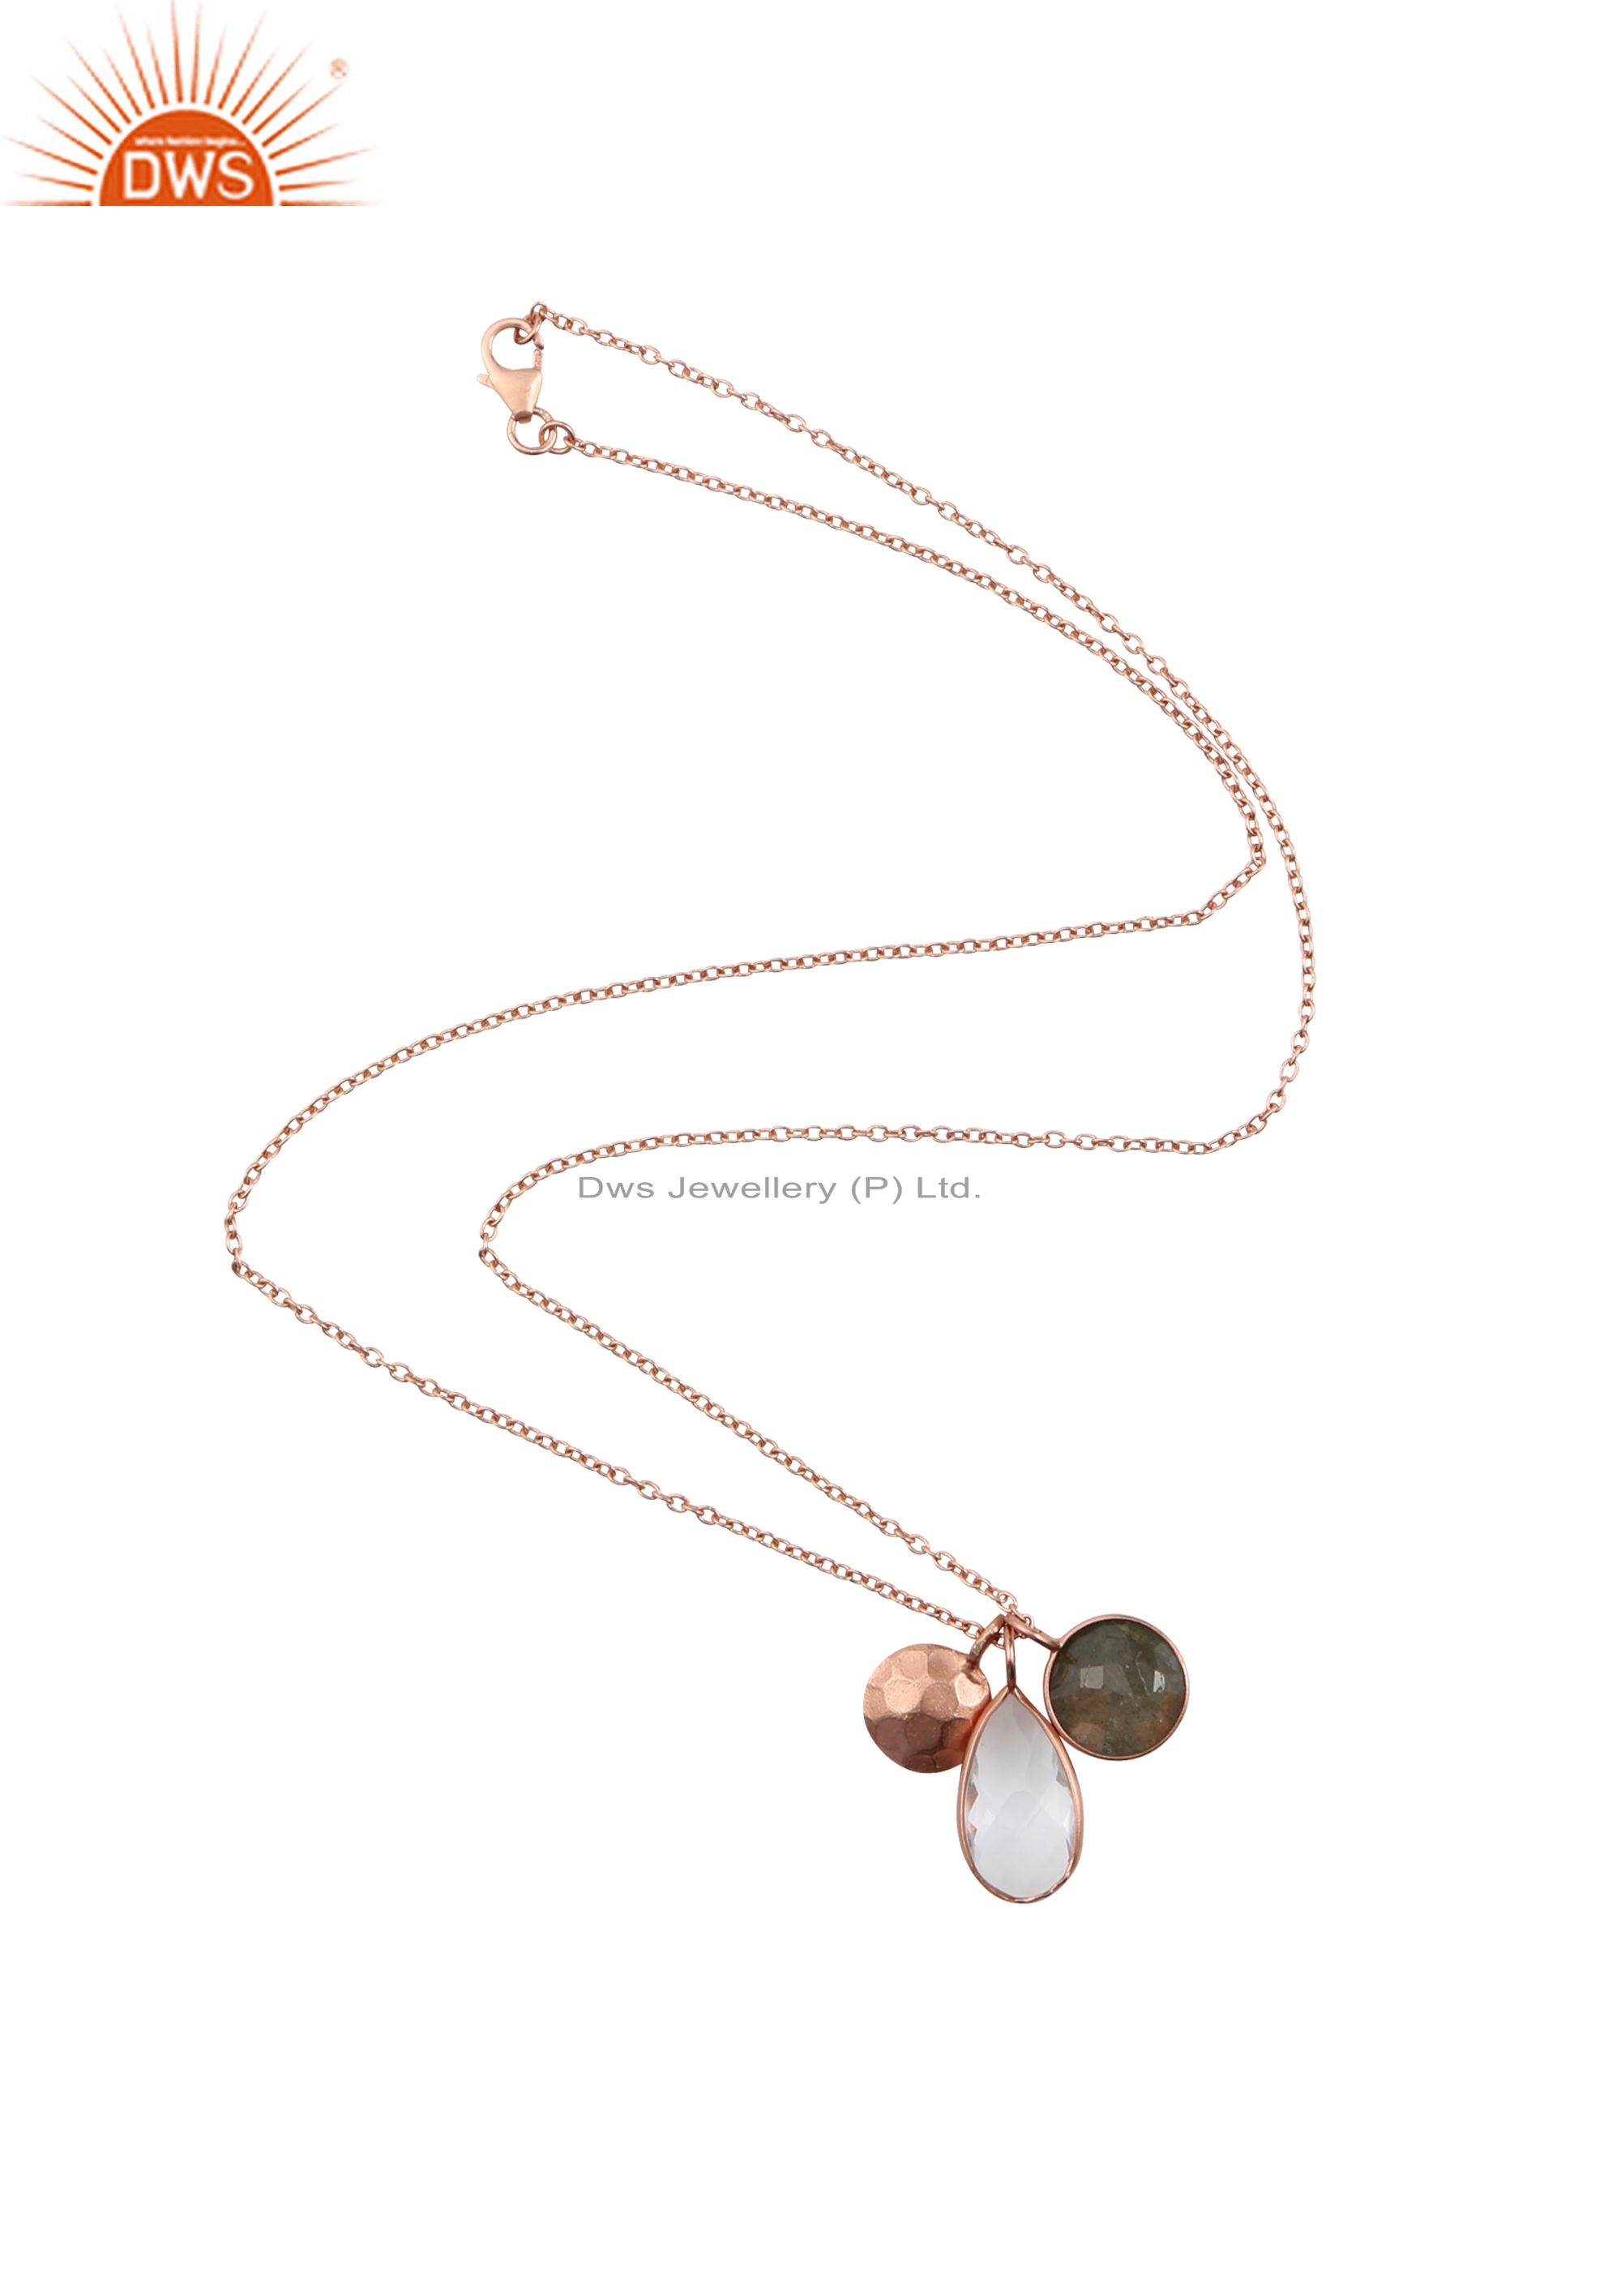 18K Yellow Gold Plated 925 Sterling Silver Smoky Quartz & Crystal Chain Pendant